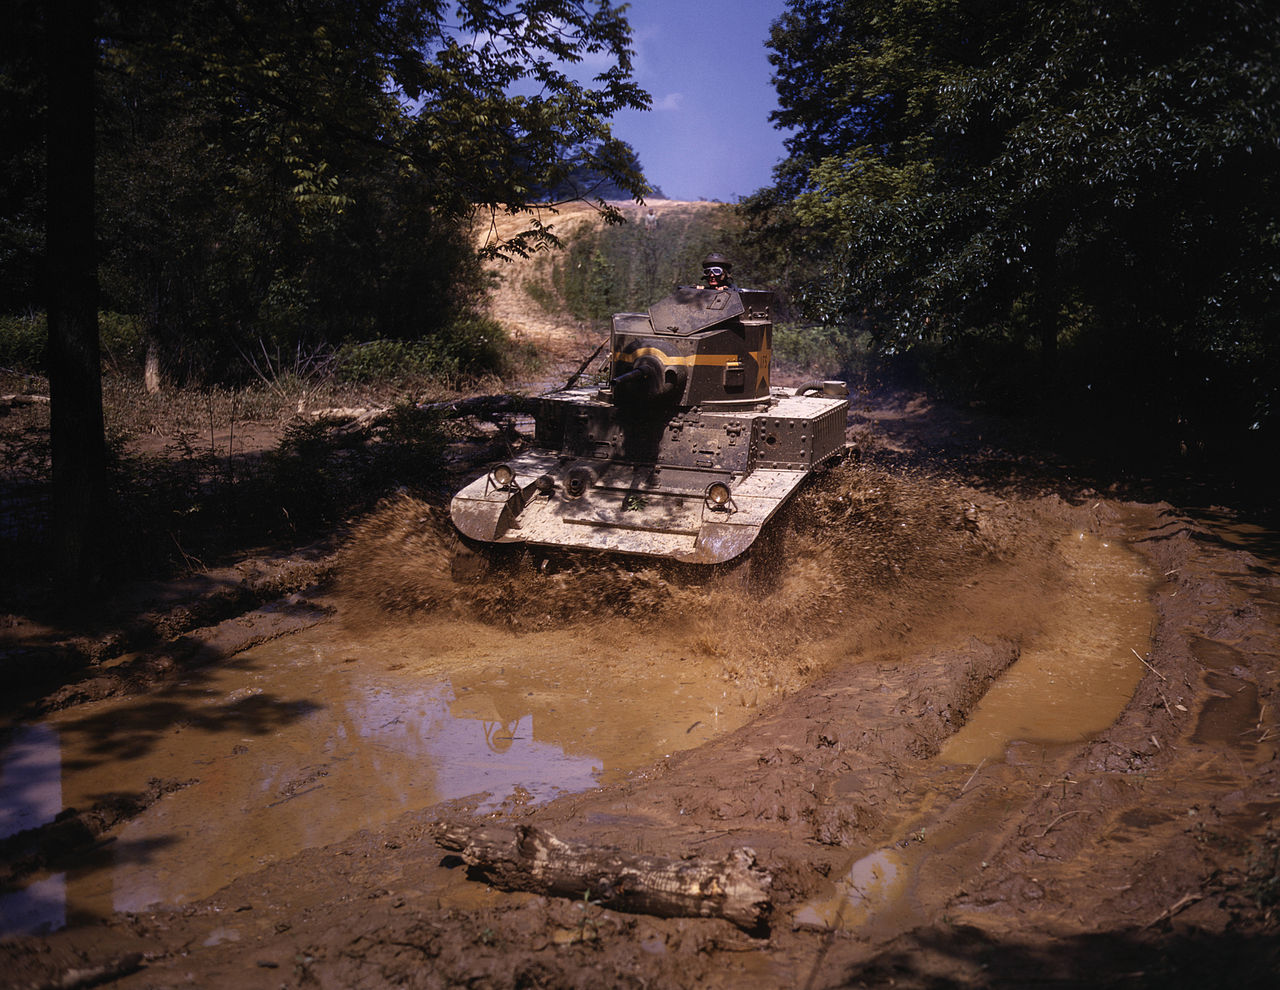 An M3 Stuart light tank going through water obstacle, Ft Knox, KY, 1942